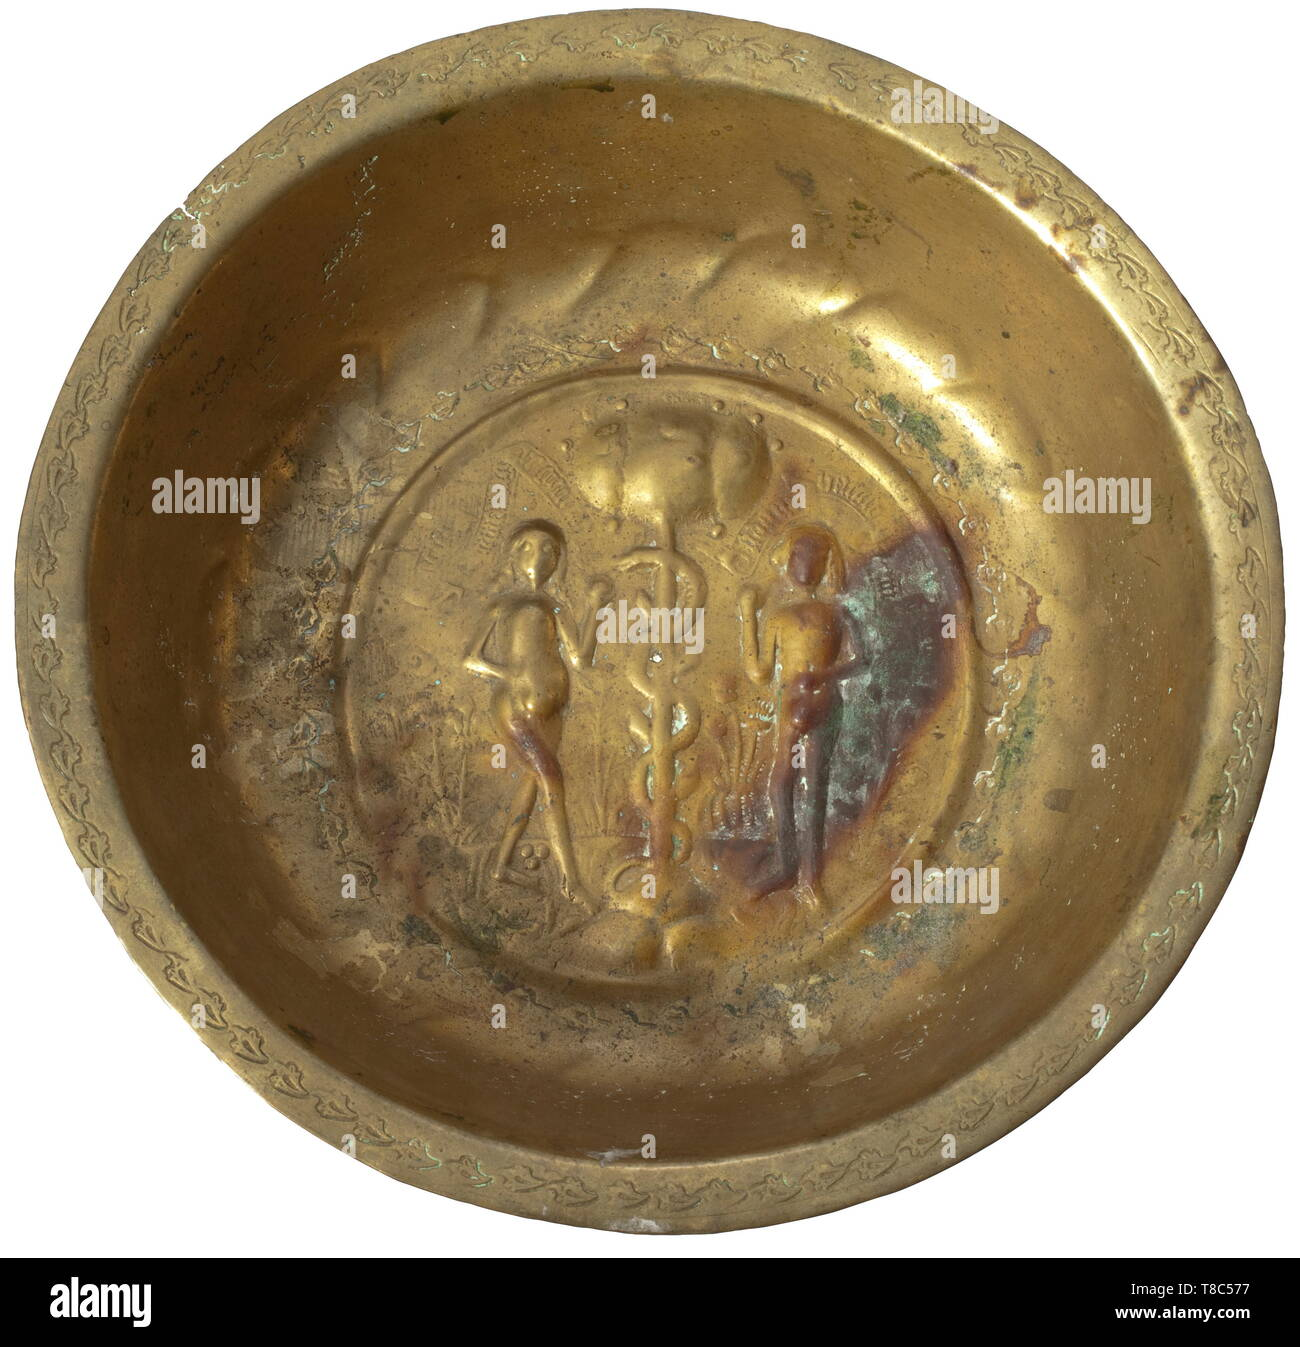 An alms dish, Nuremberg, 1st half of the 16th century Deep bowl made from brass with chased and punched decoration. The center with depiction of the Fall of Man with Adam and Eve under the tree of knowledge, above that two banners with inscription in Gothic minuscules 'EWA MACHT DEN ANFANG DES GEBRUCHS - ADAM HAT GEBROCHEN DAS GEBOT' (Eve induced the infringement - Adam broke the commandment). The center and the border with continuous frieze made from leaf marks. Diameter 27.5 cm. historic, historical, handicrafts, handcraft, craft, object, objec, Additional-Rights-Clearance-Info-Not-Available - Stock Image